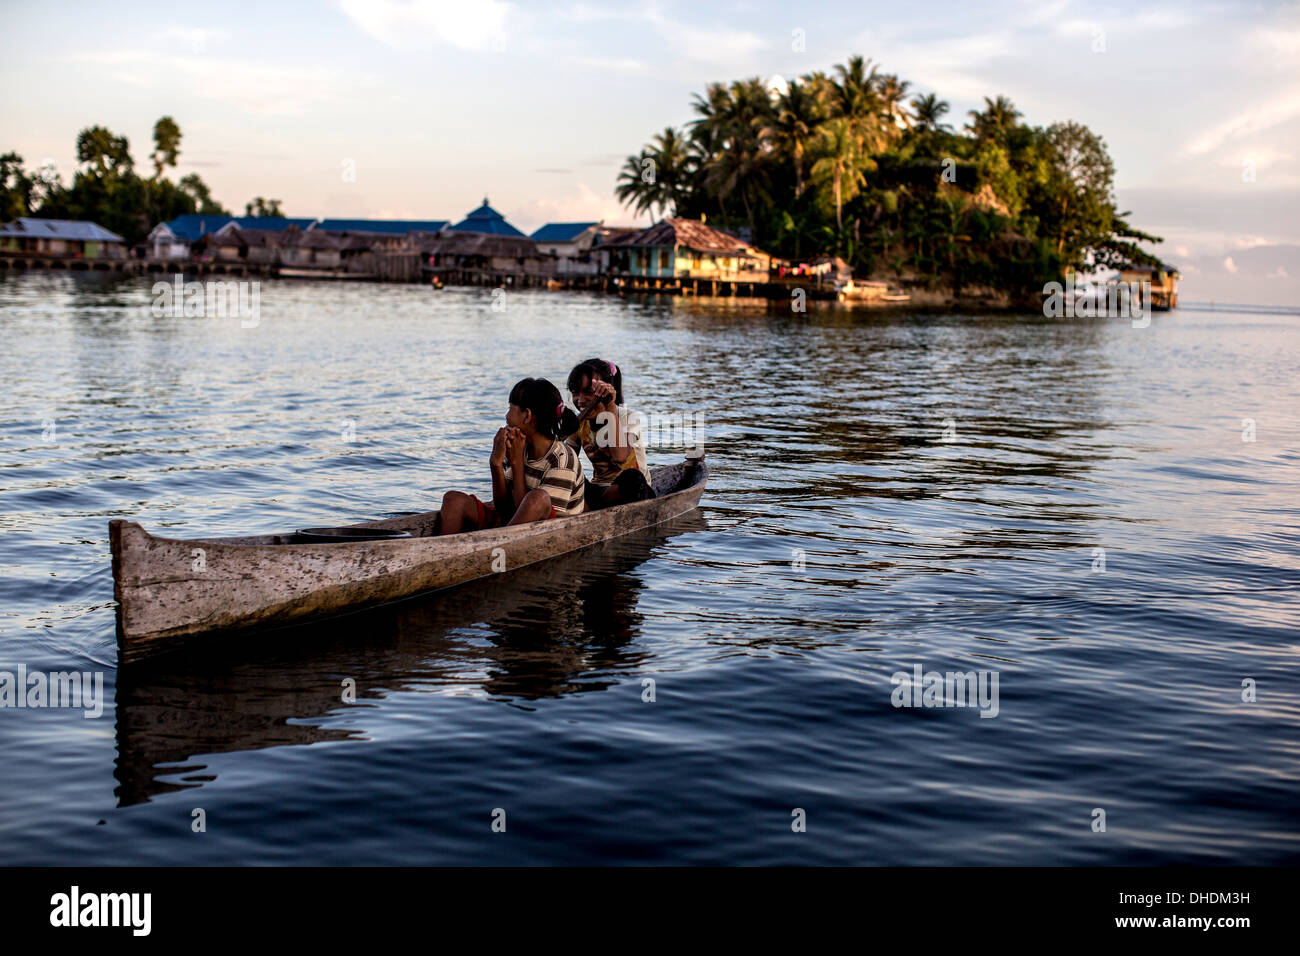 Two girls in a canoe, Togian Islands, Sulawesi, Indonesia, Southeast Asia, Asia - Stock Image